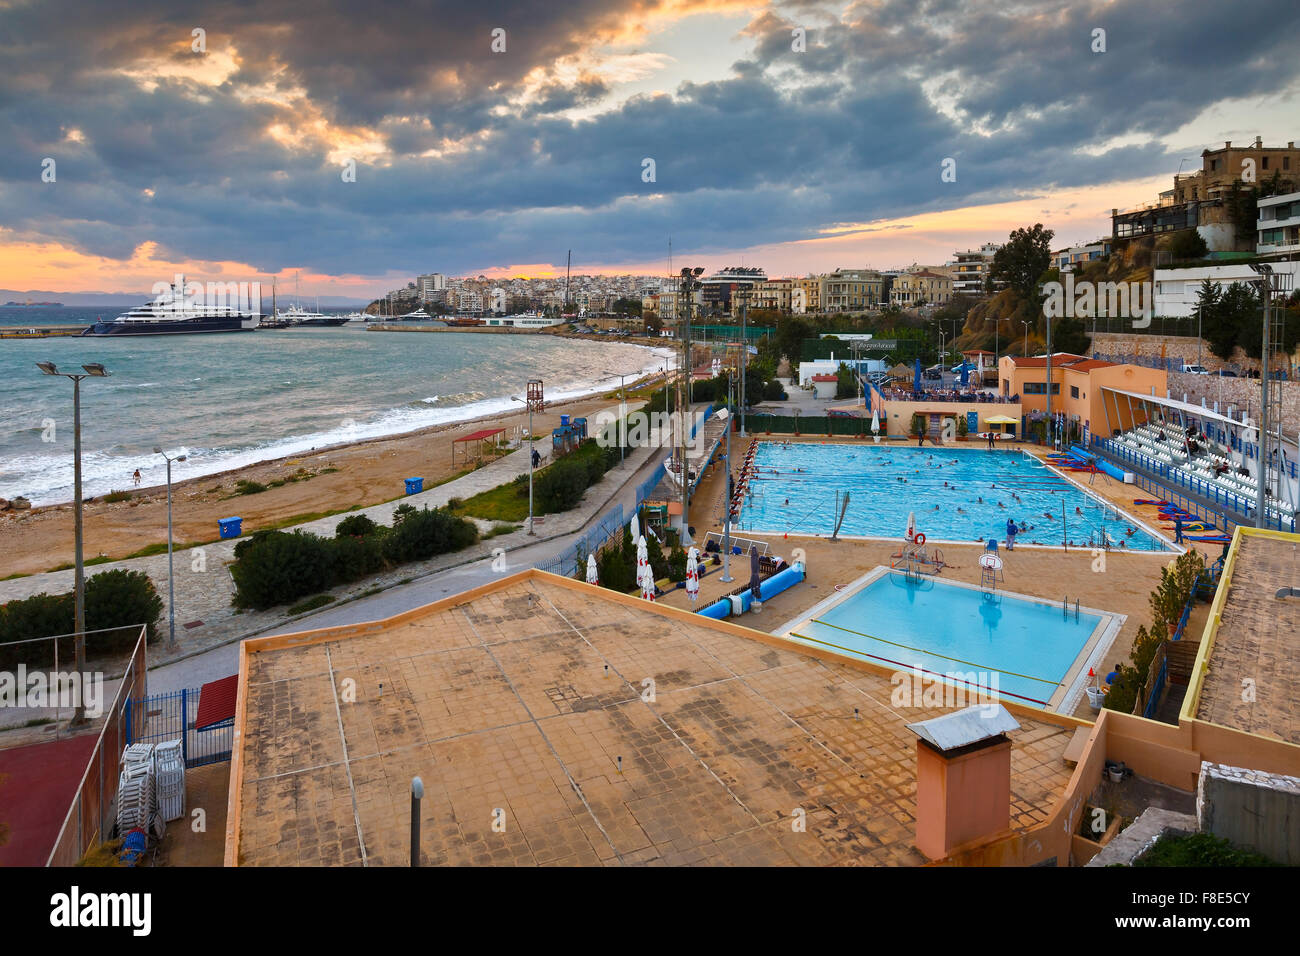 View of the municipal swimming pool in Piraeus and mouth of Zea marina, Greece - Stock Image